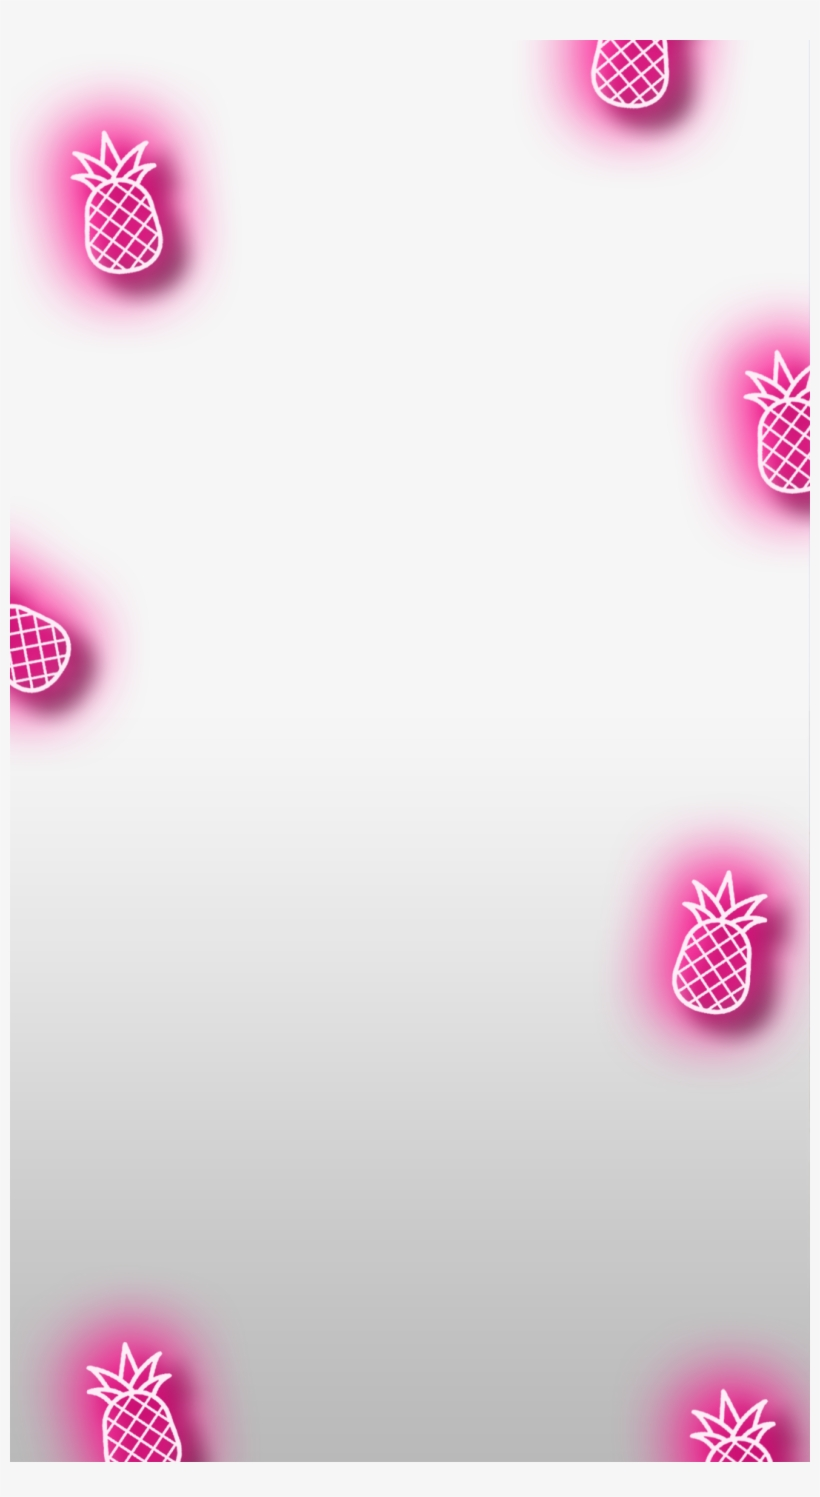 Neon Pineapple Bachelorette Snapchat Filter Transparent - Heart Filter Snapchat Transparent, transparent png #219702